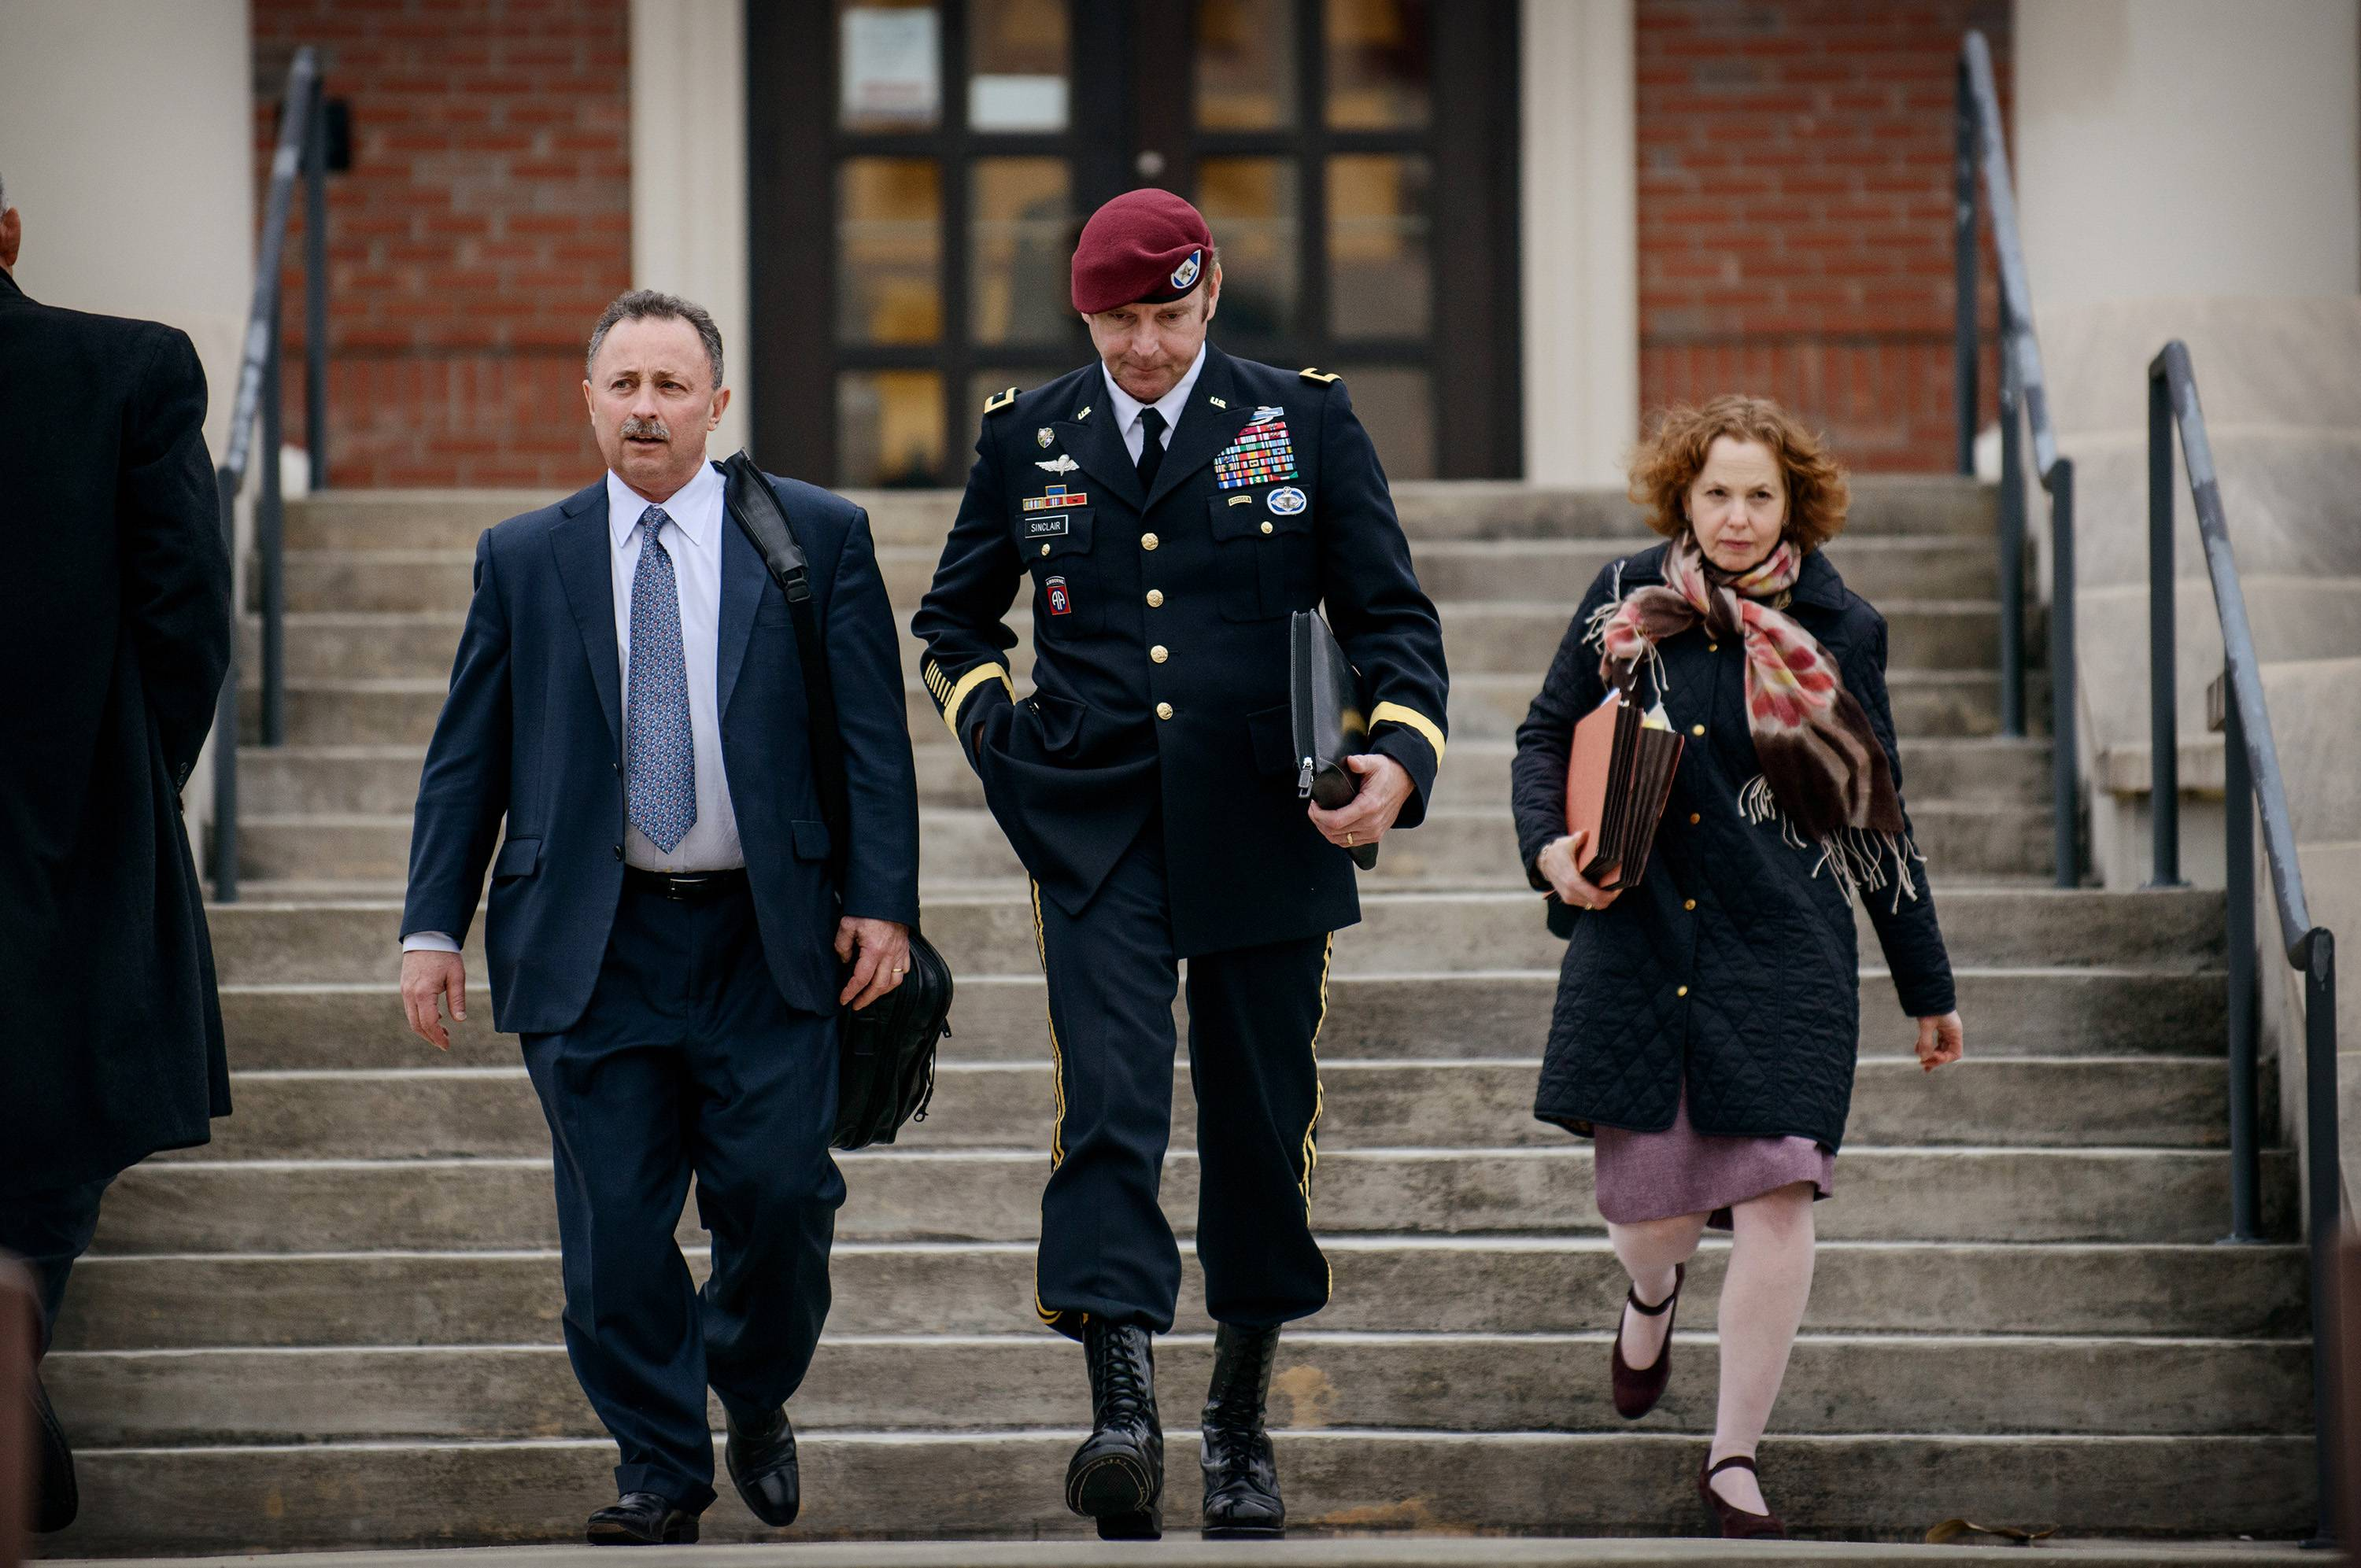 Brig. Gen. Jeffrey Sinclair leaves the courthouse with his lawyers Richard Scheff, left, and Ellen C. Brotman, following a day of motions at Fort Bragg, N.C., March 4. A military judge declined Monday to dismiss sexual assault charges against Sinclair.